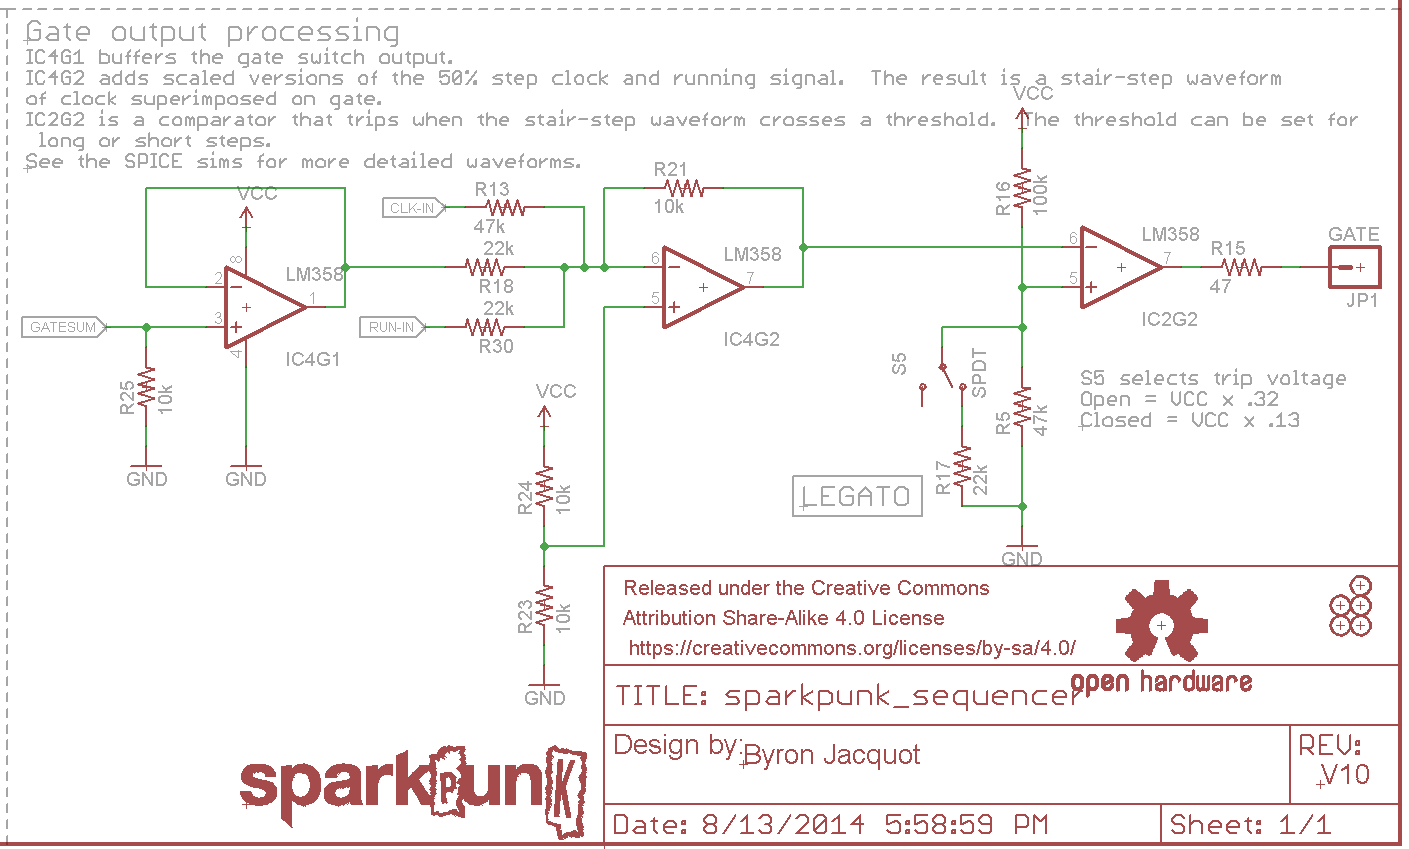 Sparkpunk Sequencer Theory And Applications Guide D Ff Circuit Diagram Gate